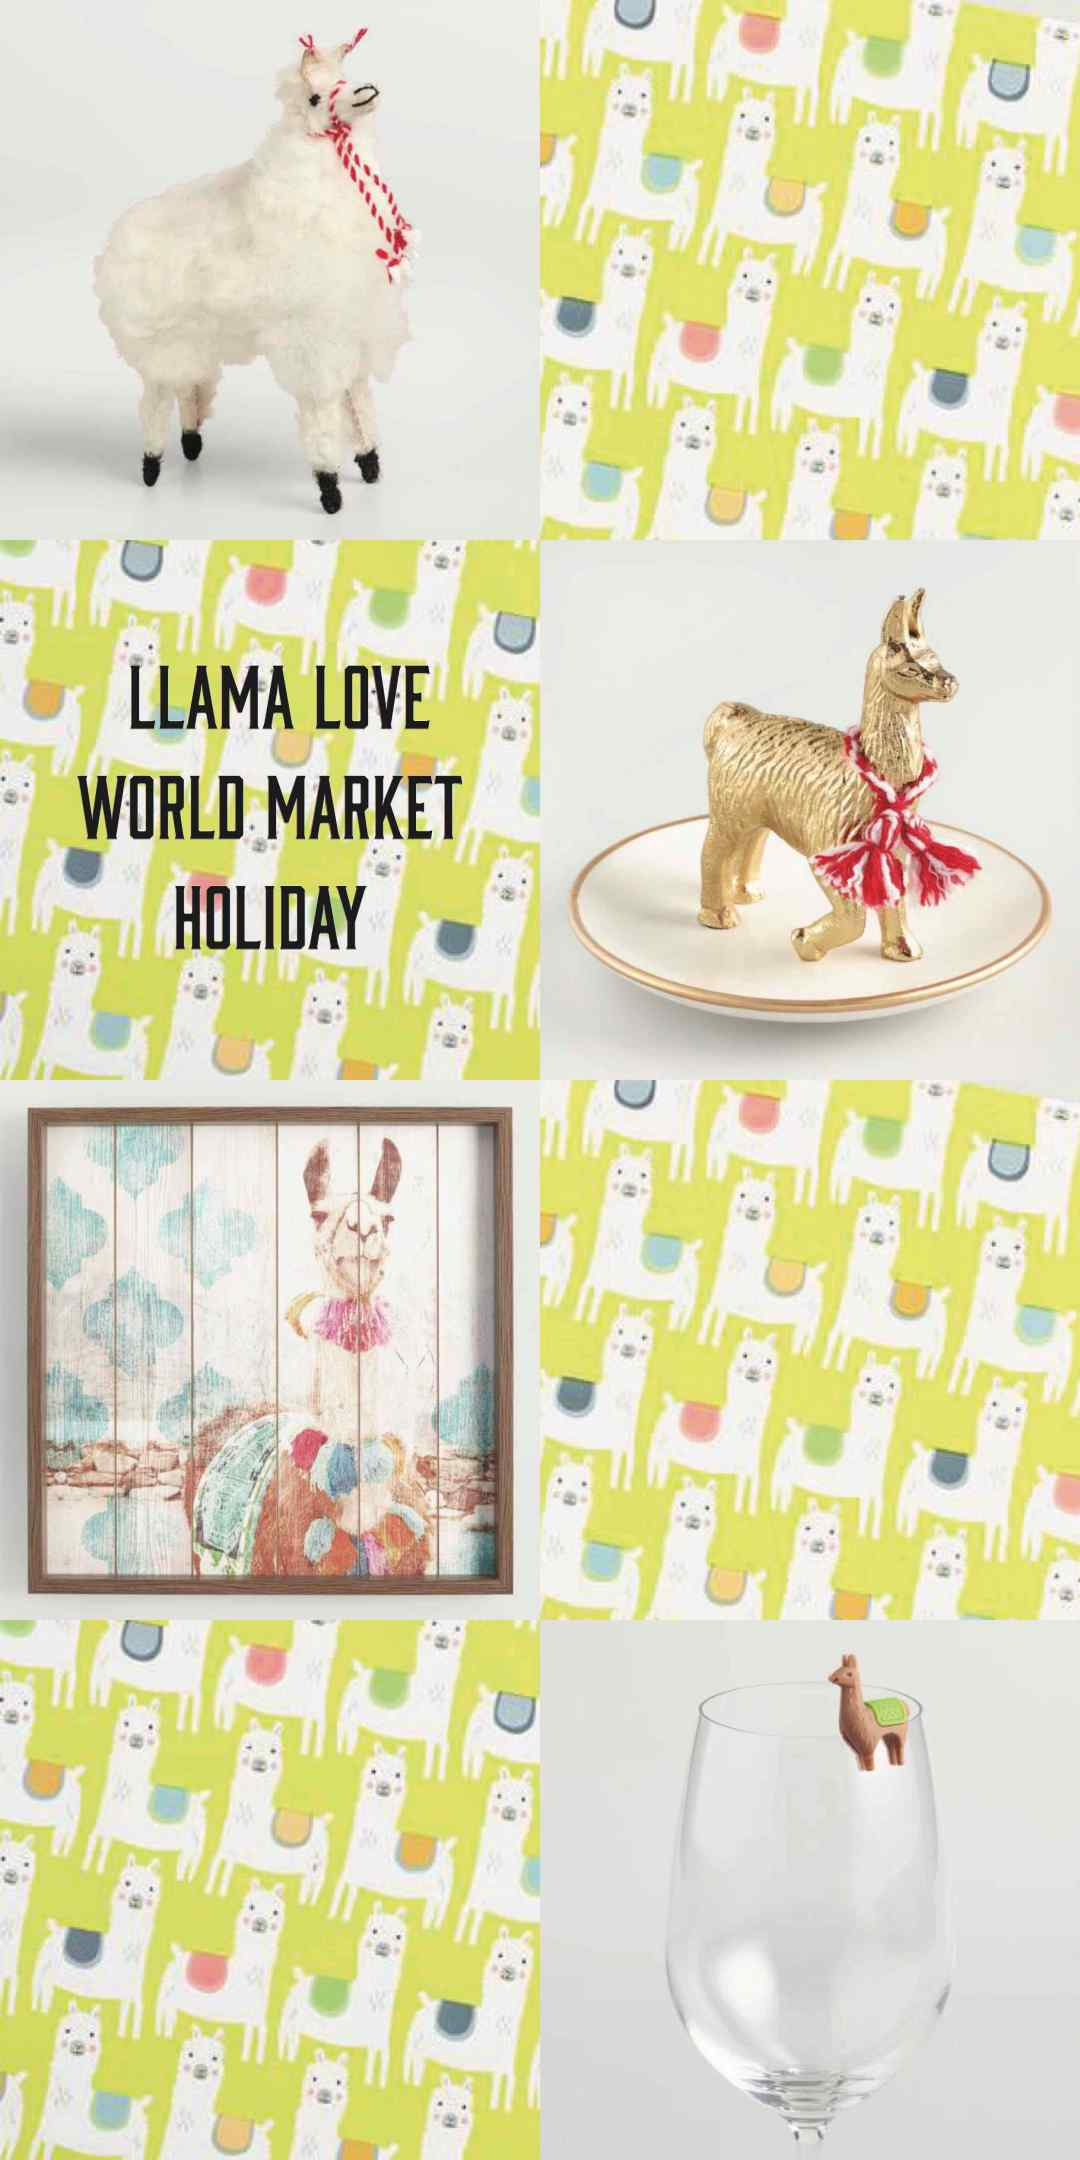 Llama Love World Market Holiday